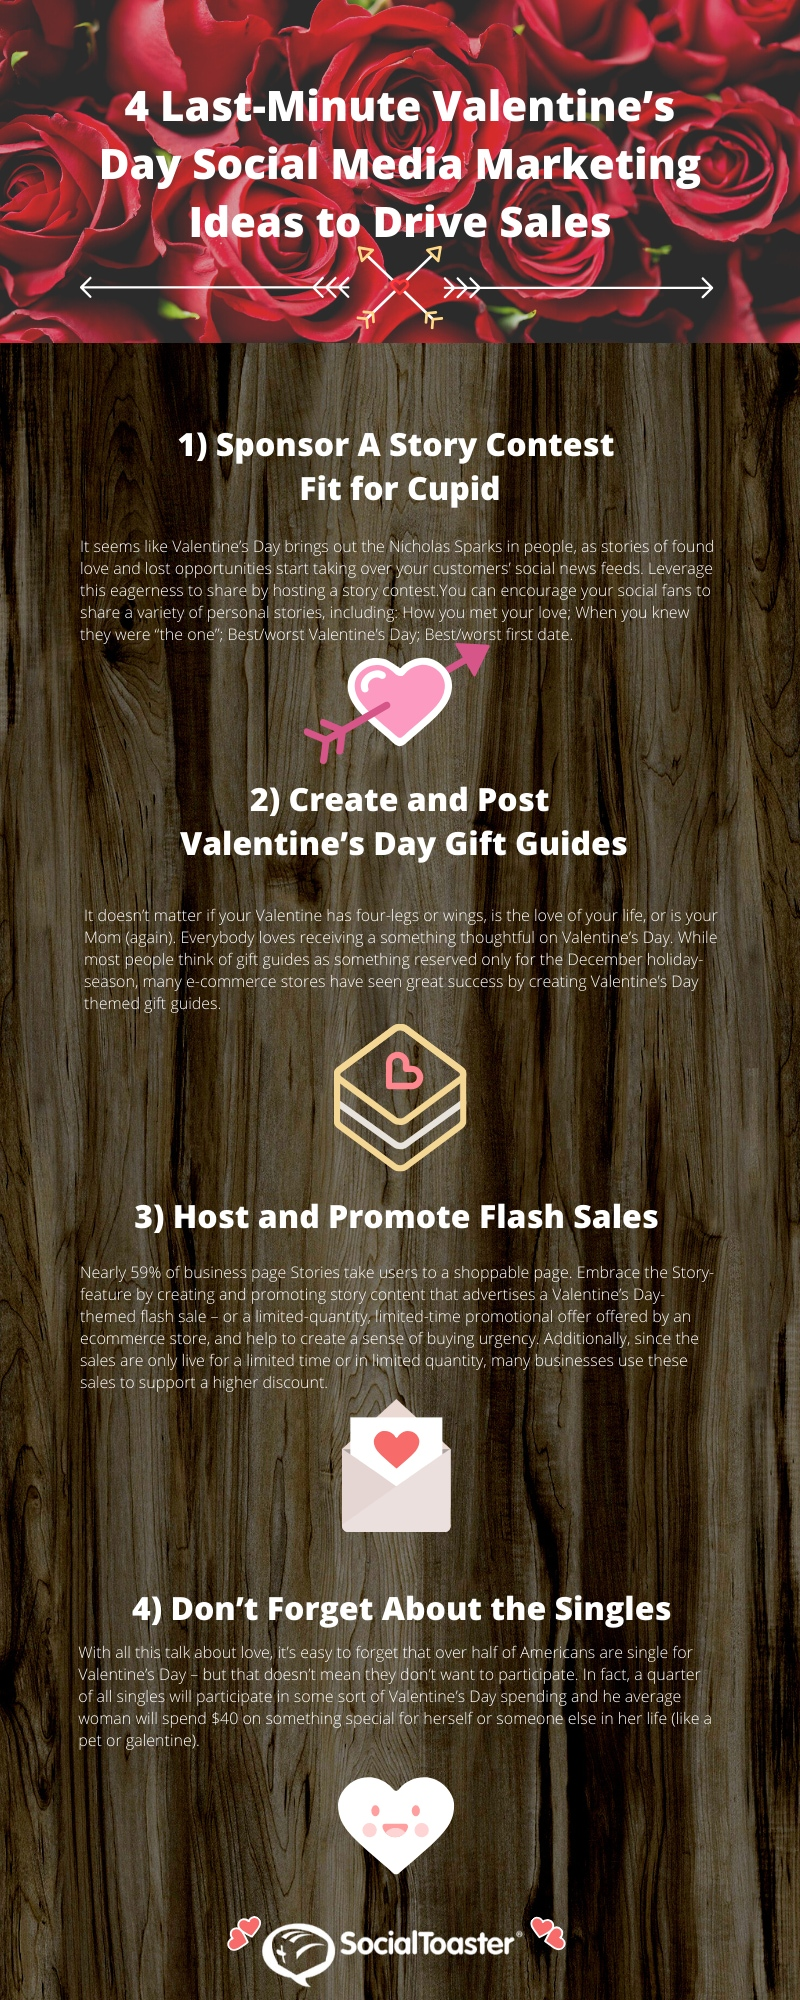 4 Valentine's Day Social Media Marketing Ideas to Drive Sales Image